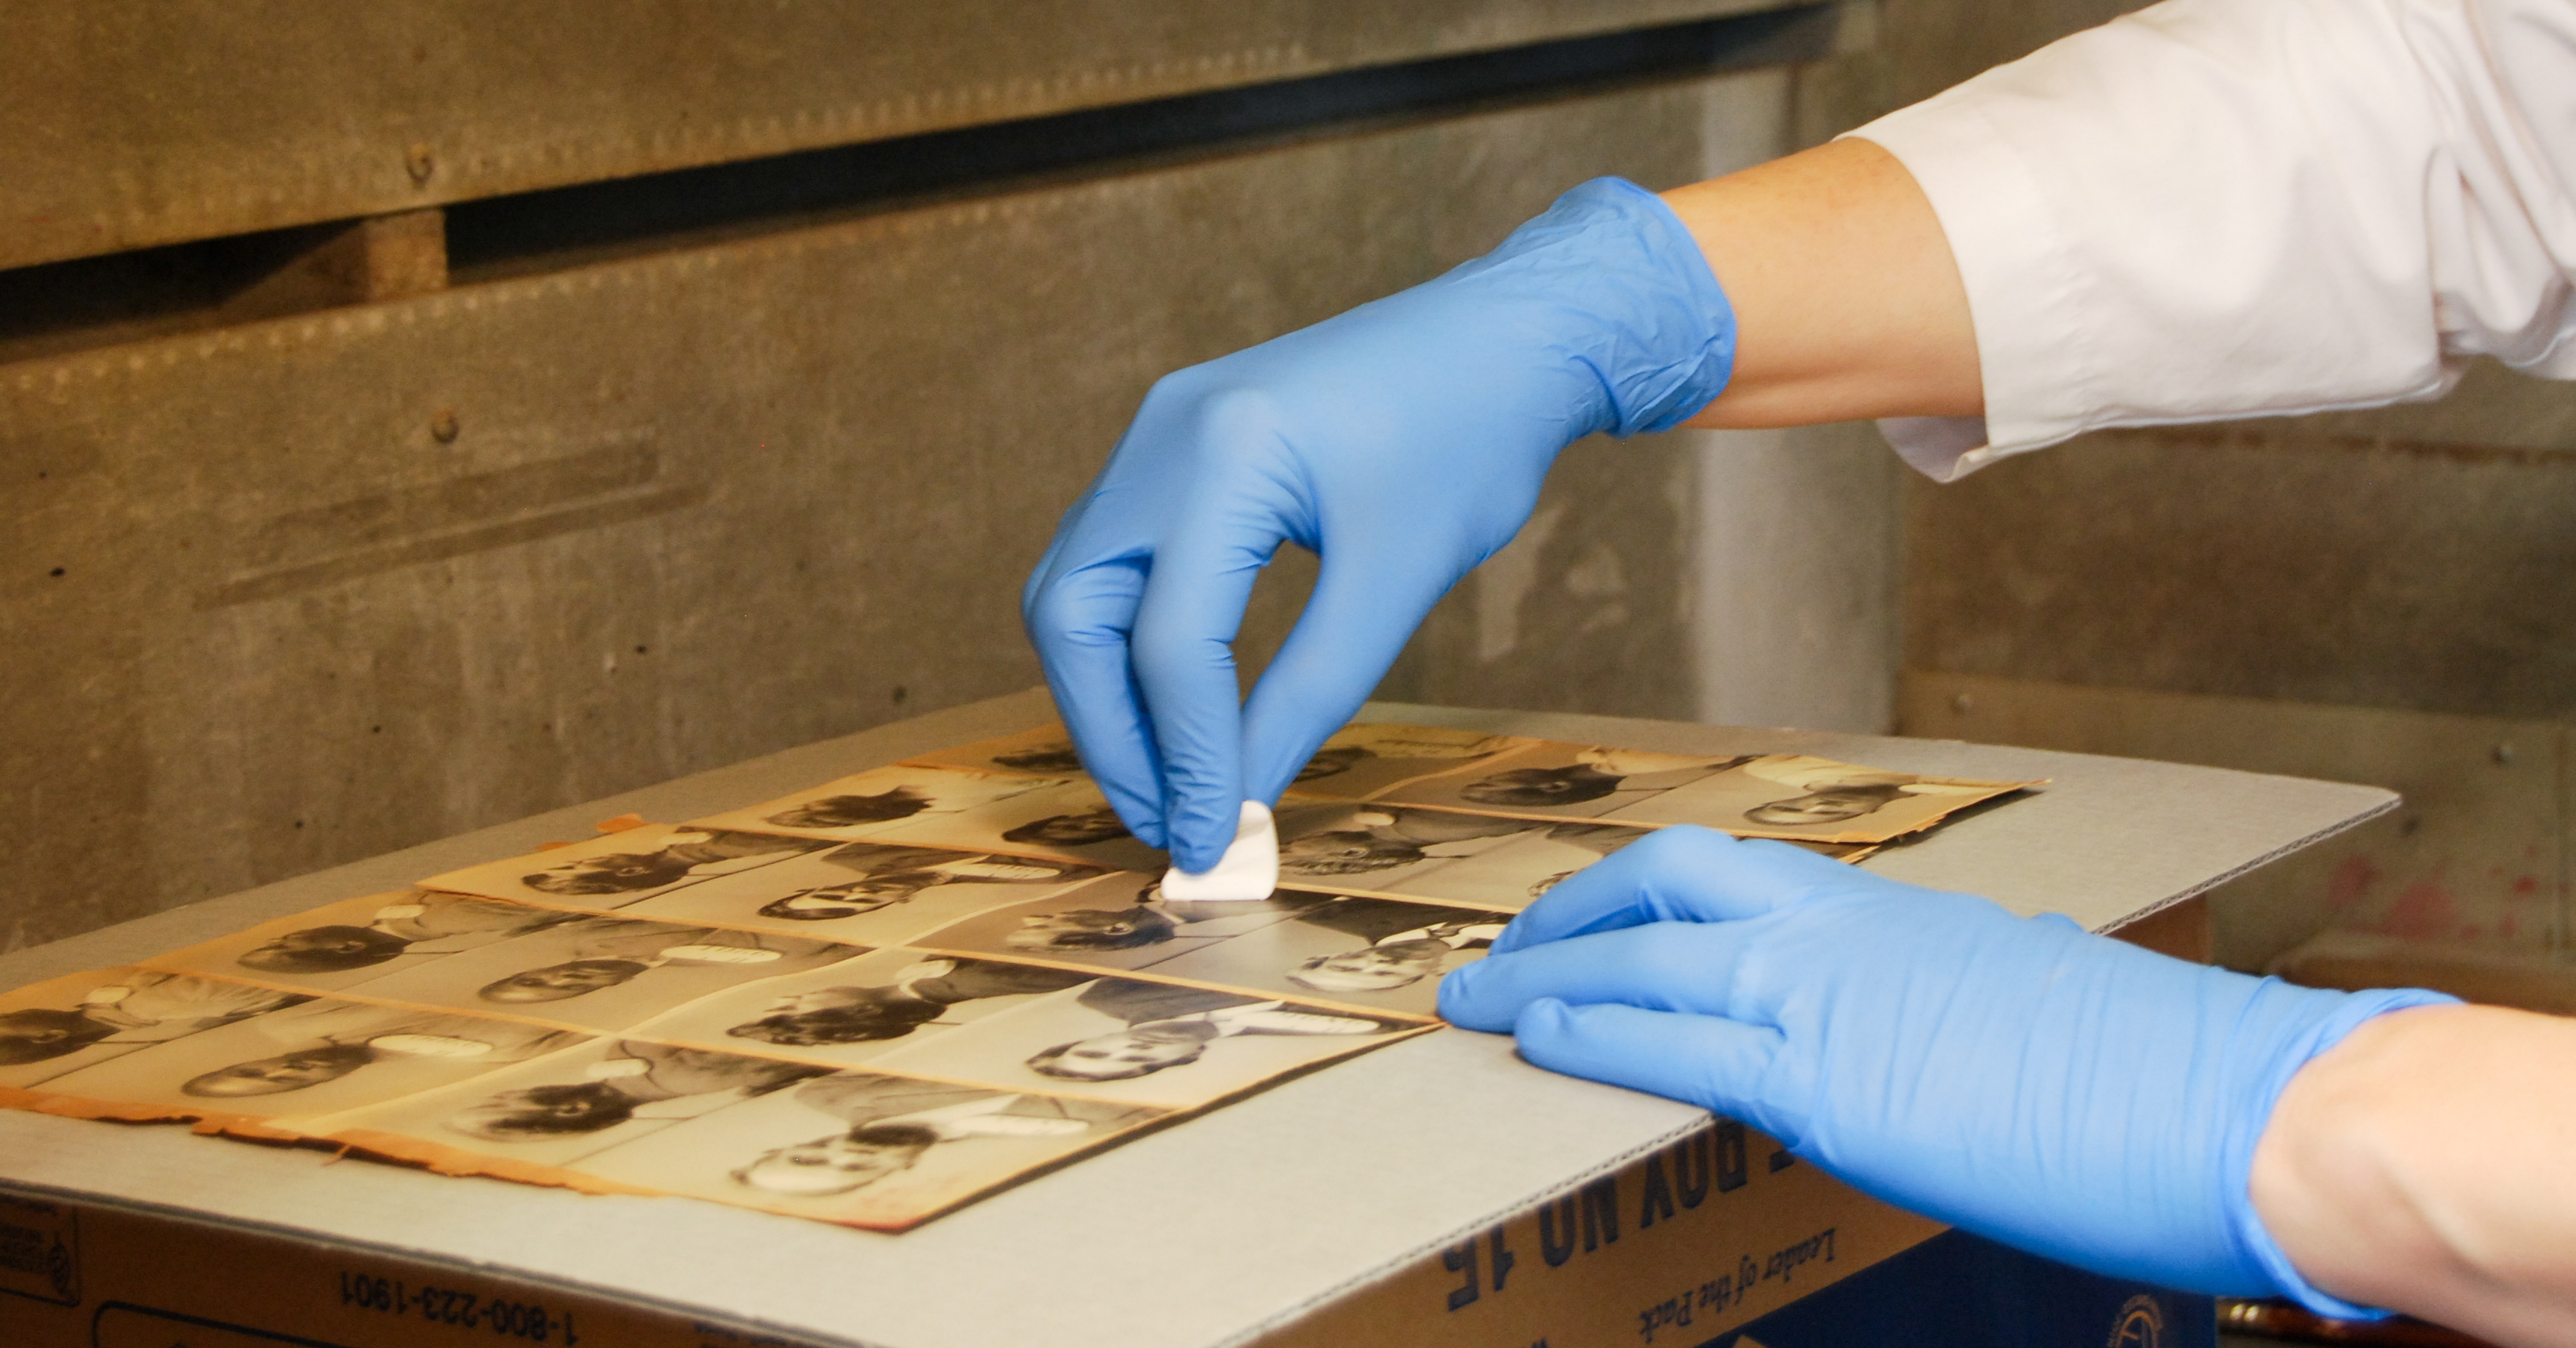 Cleaning a sheet of mugshot photographs